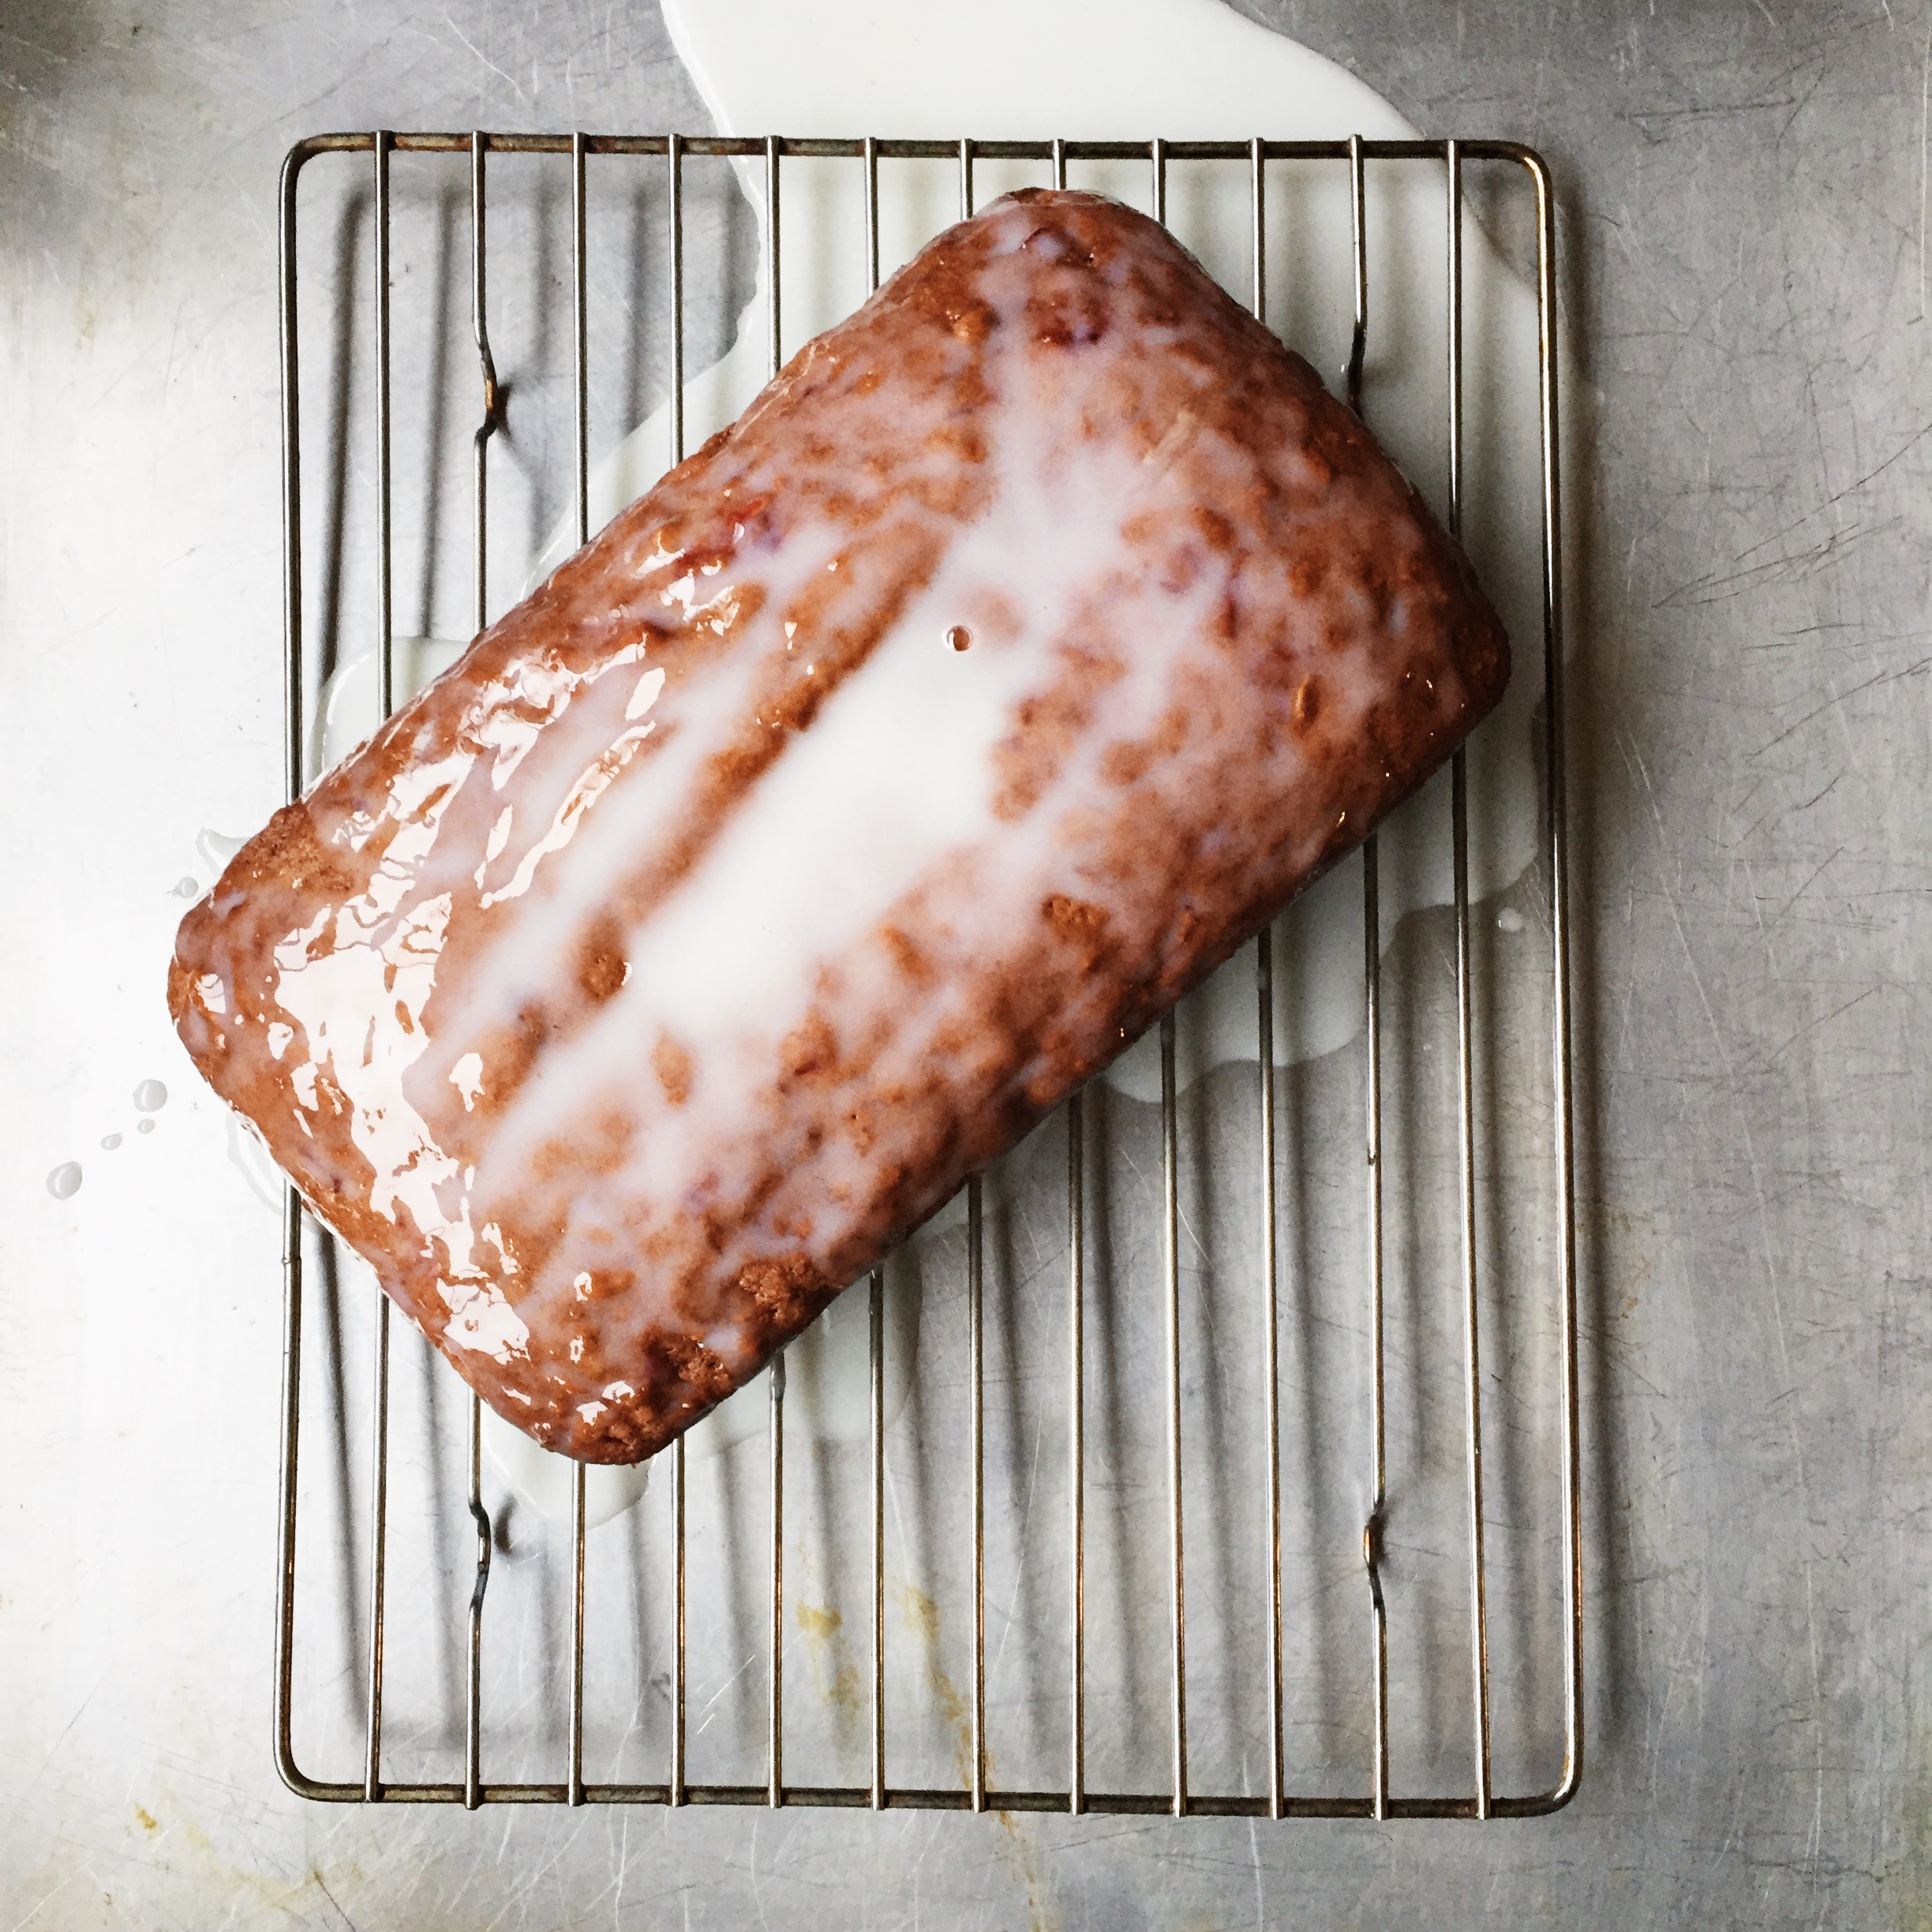 Beet and Carrot Cake with Buttermilk Glaze